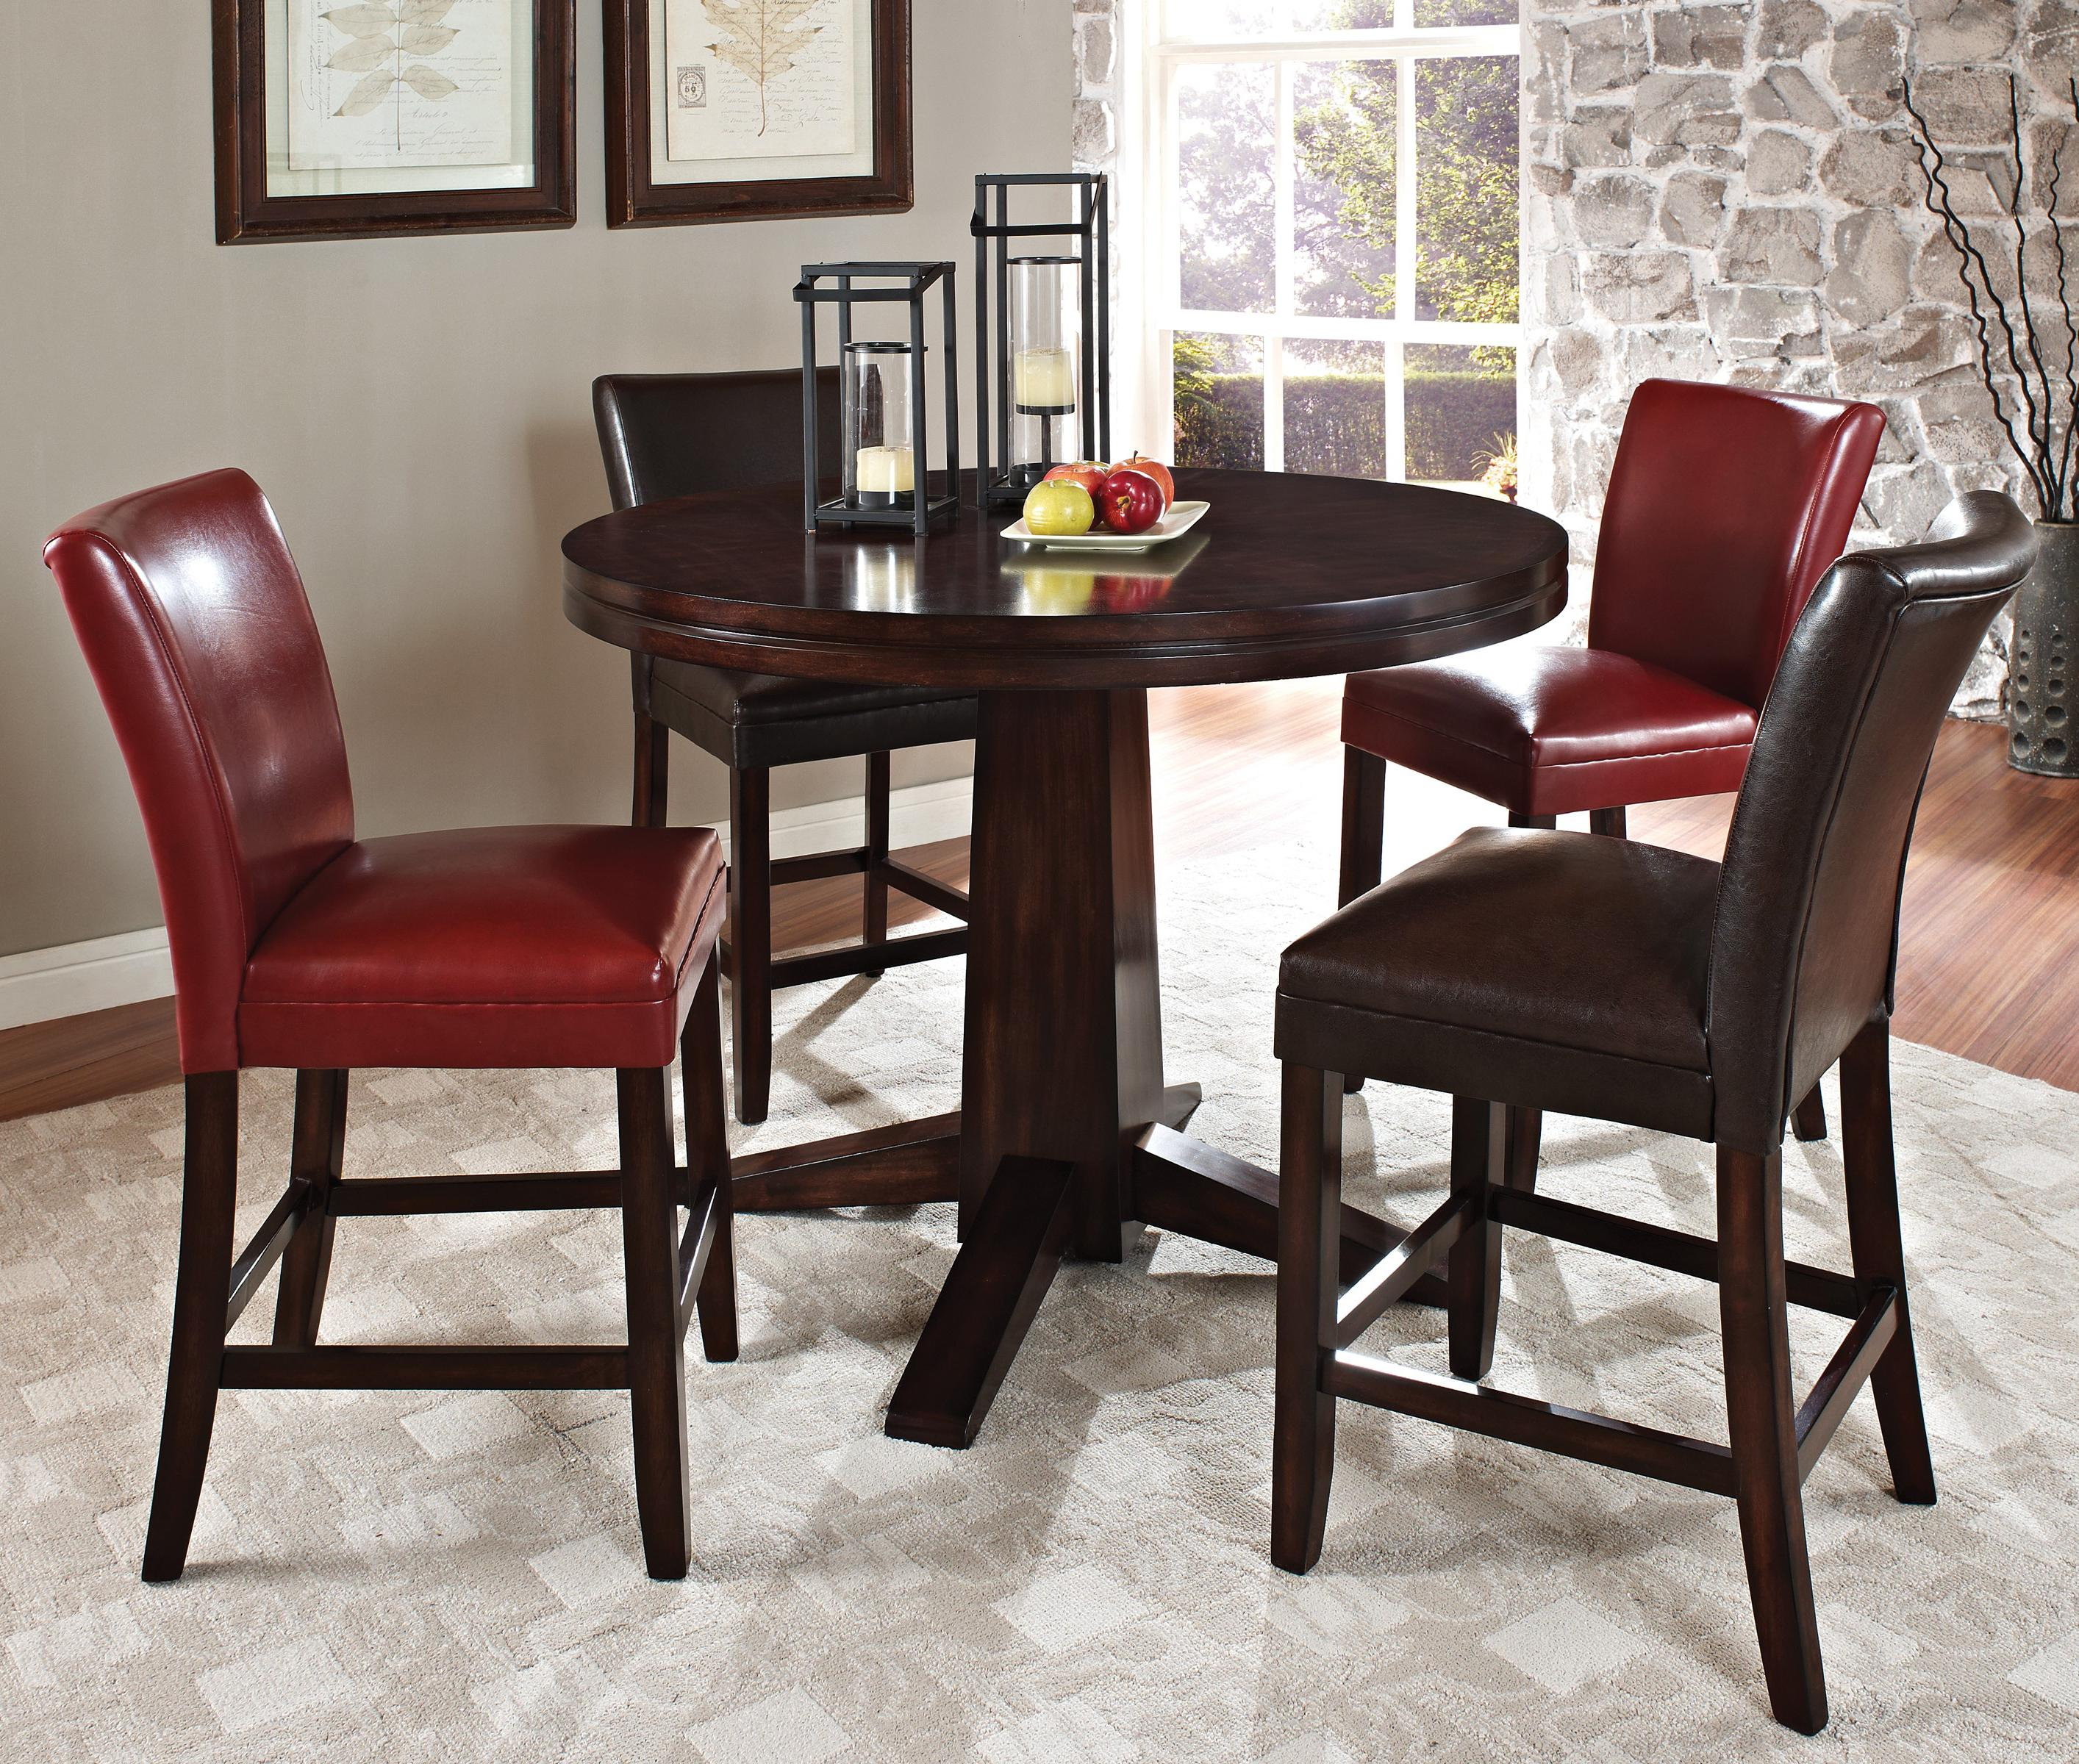 Steve Silver Hartford 5 Piece Counter Height Dining Set - Item Number: HF480PB+T+2x600CCBR+2x600CCRD